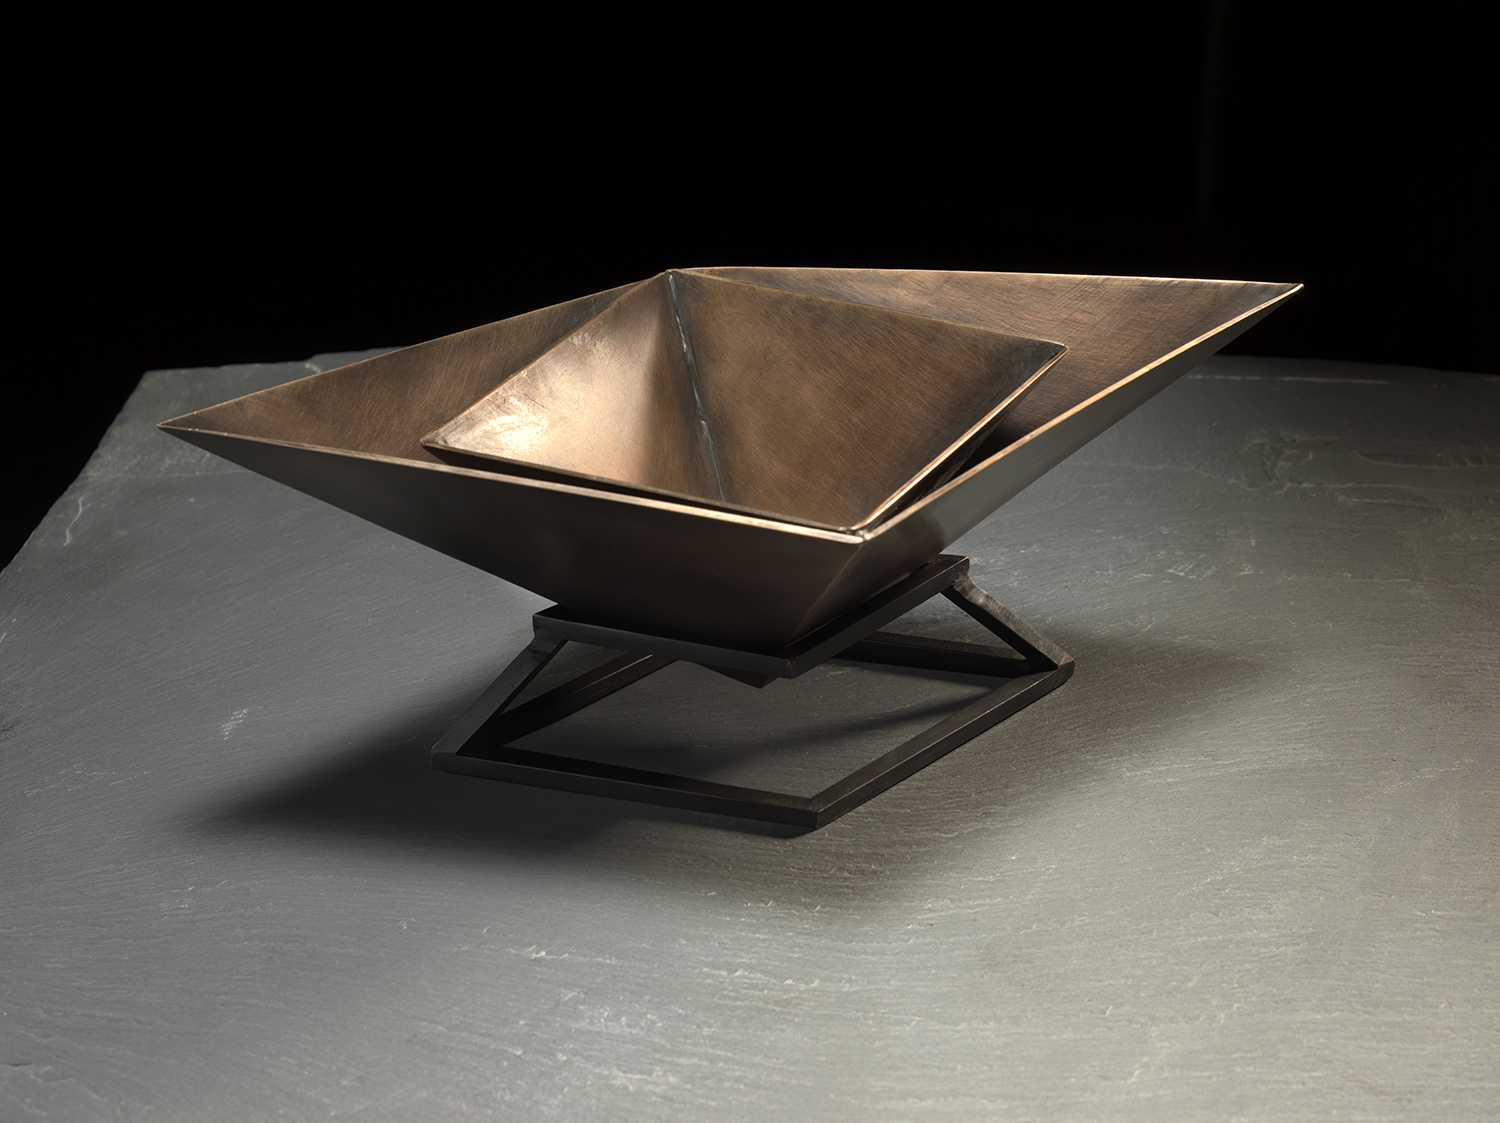 "Funerary Vessel II Silicon bronze (vessel), blackened mild steel (stand) | 8 1/2"" x 4 1/2"" x 7 1/2"" 